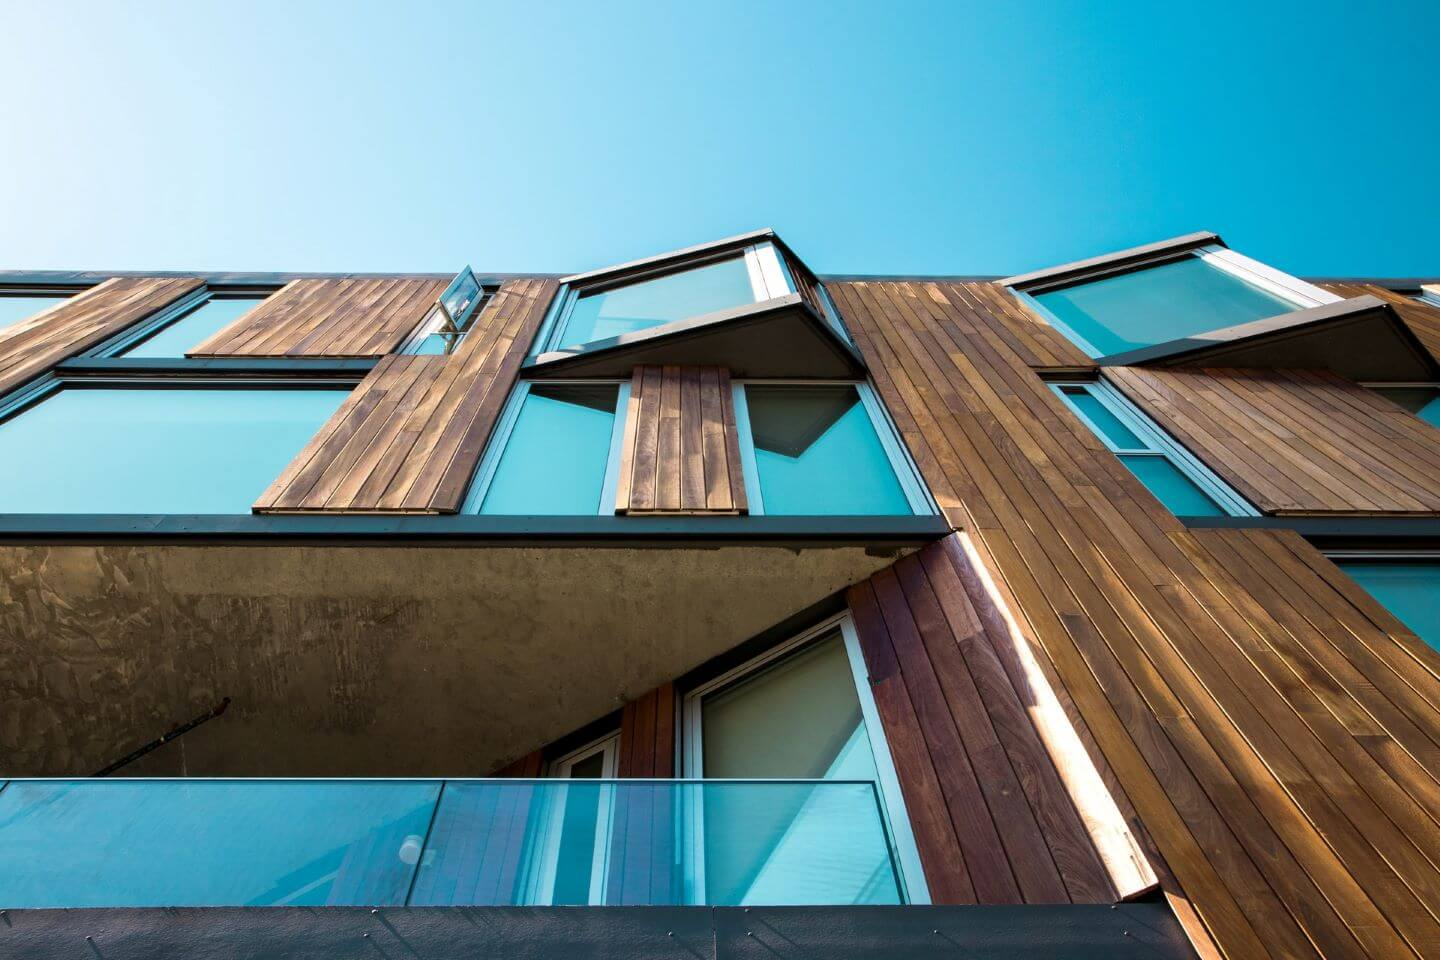 Rainscreen facade, illustrating the topic about rainscreen systems, cavity and joints